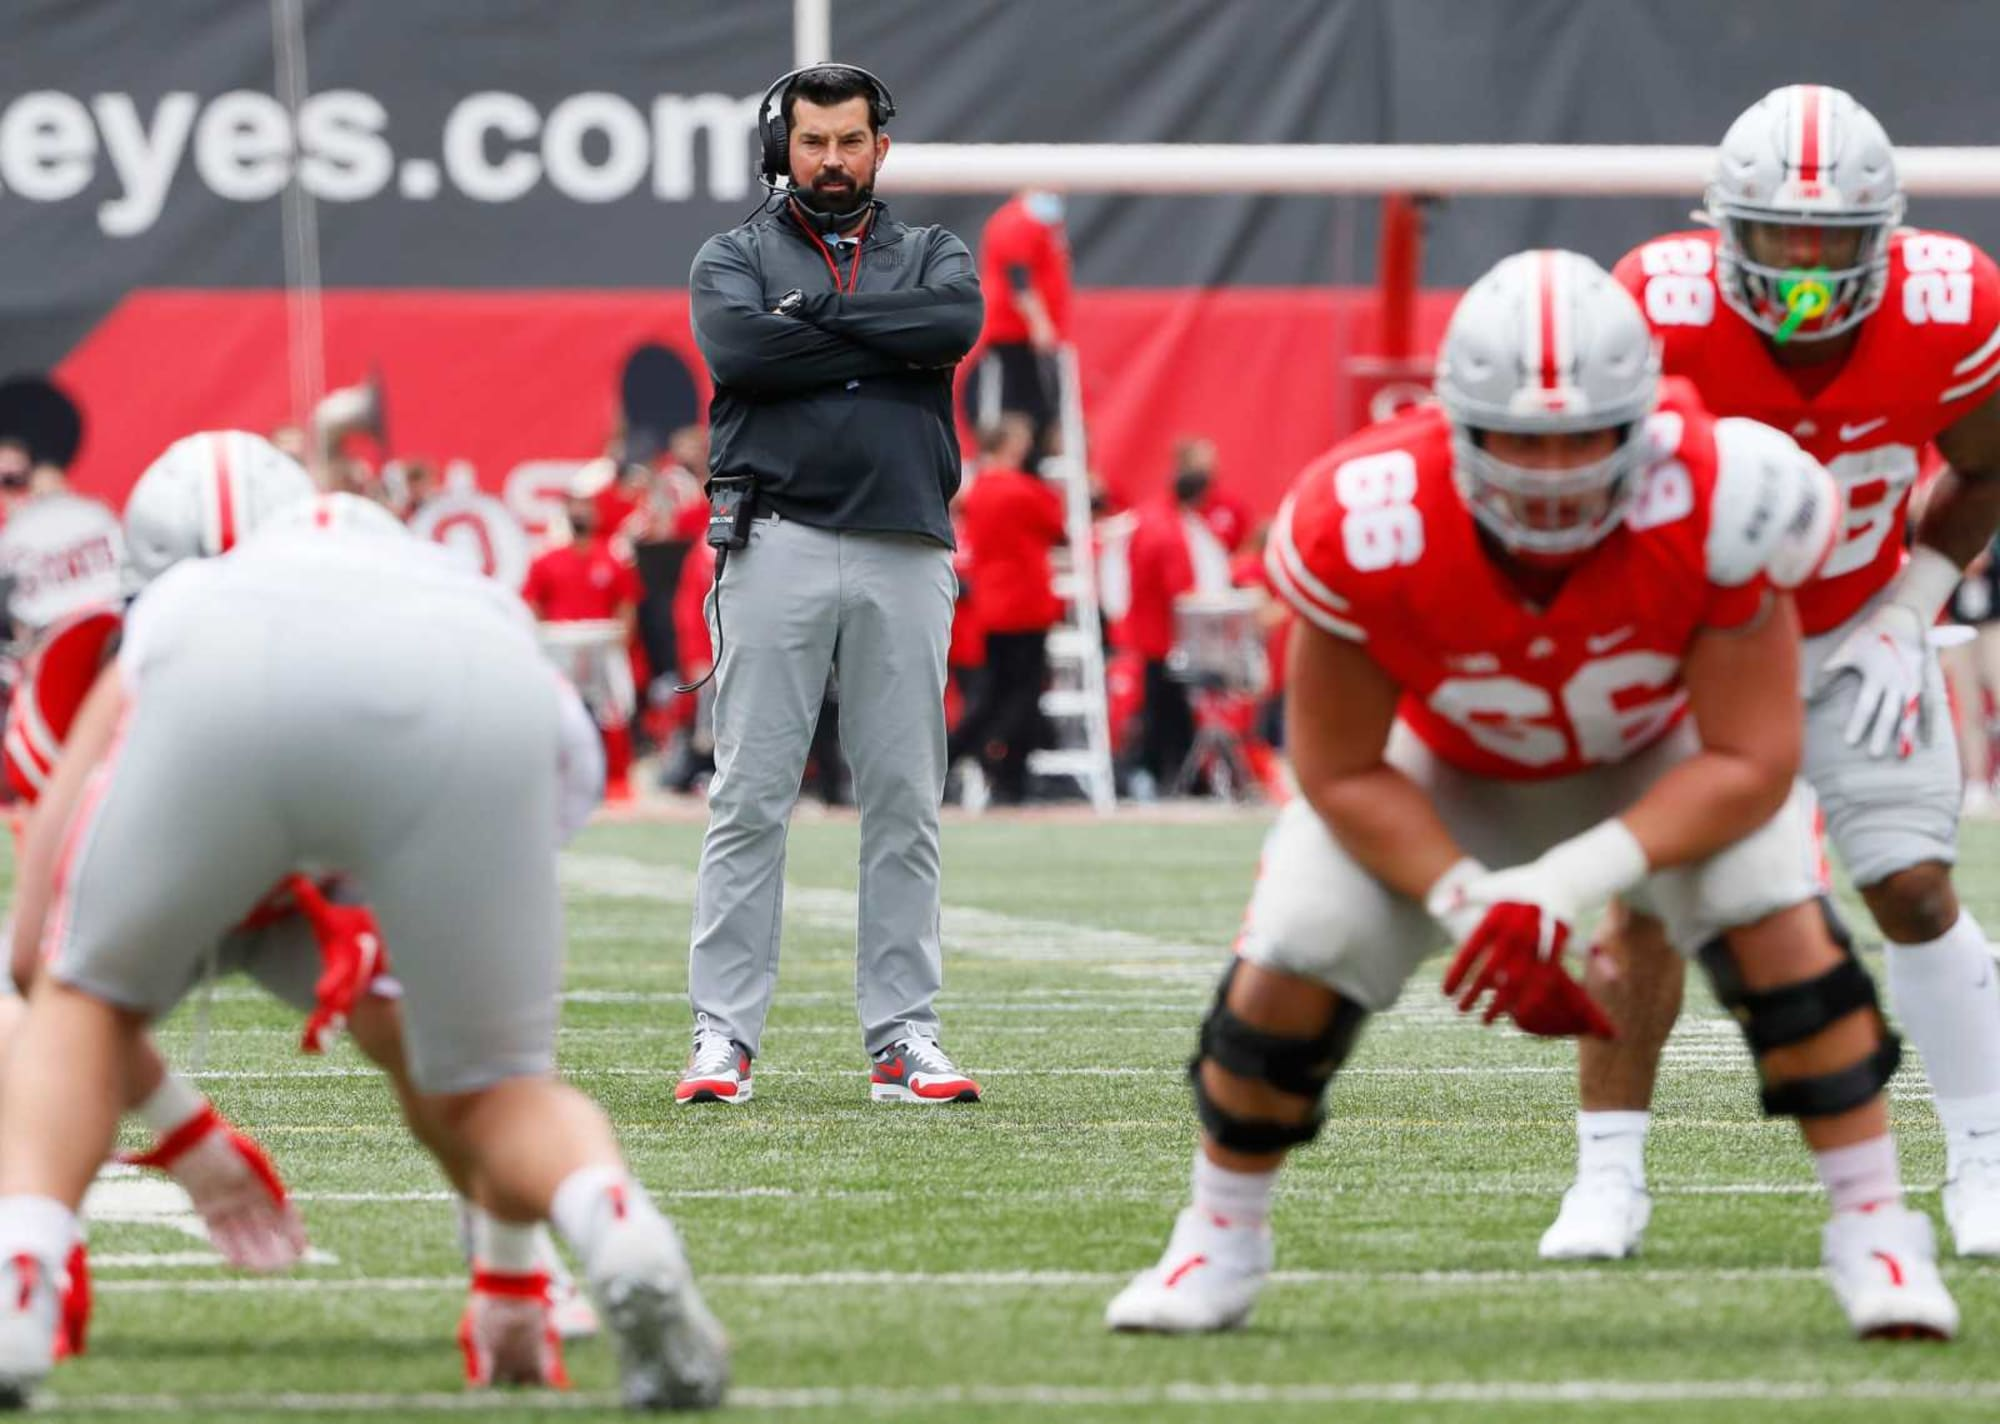 Ohio State football: OSU uses Real approach to recruiting